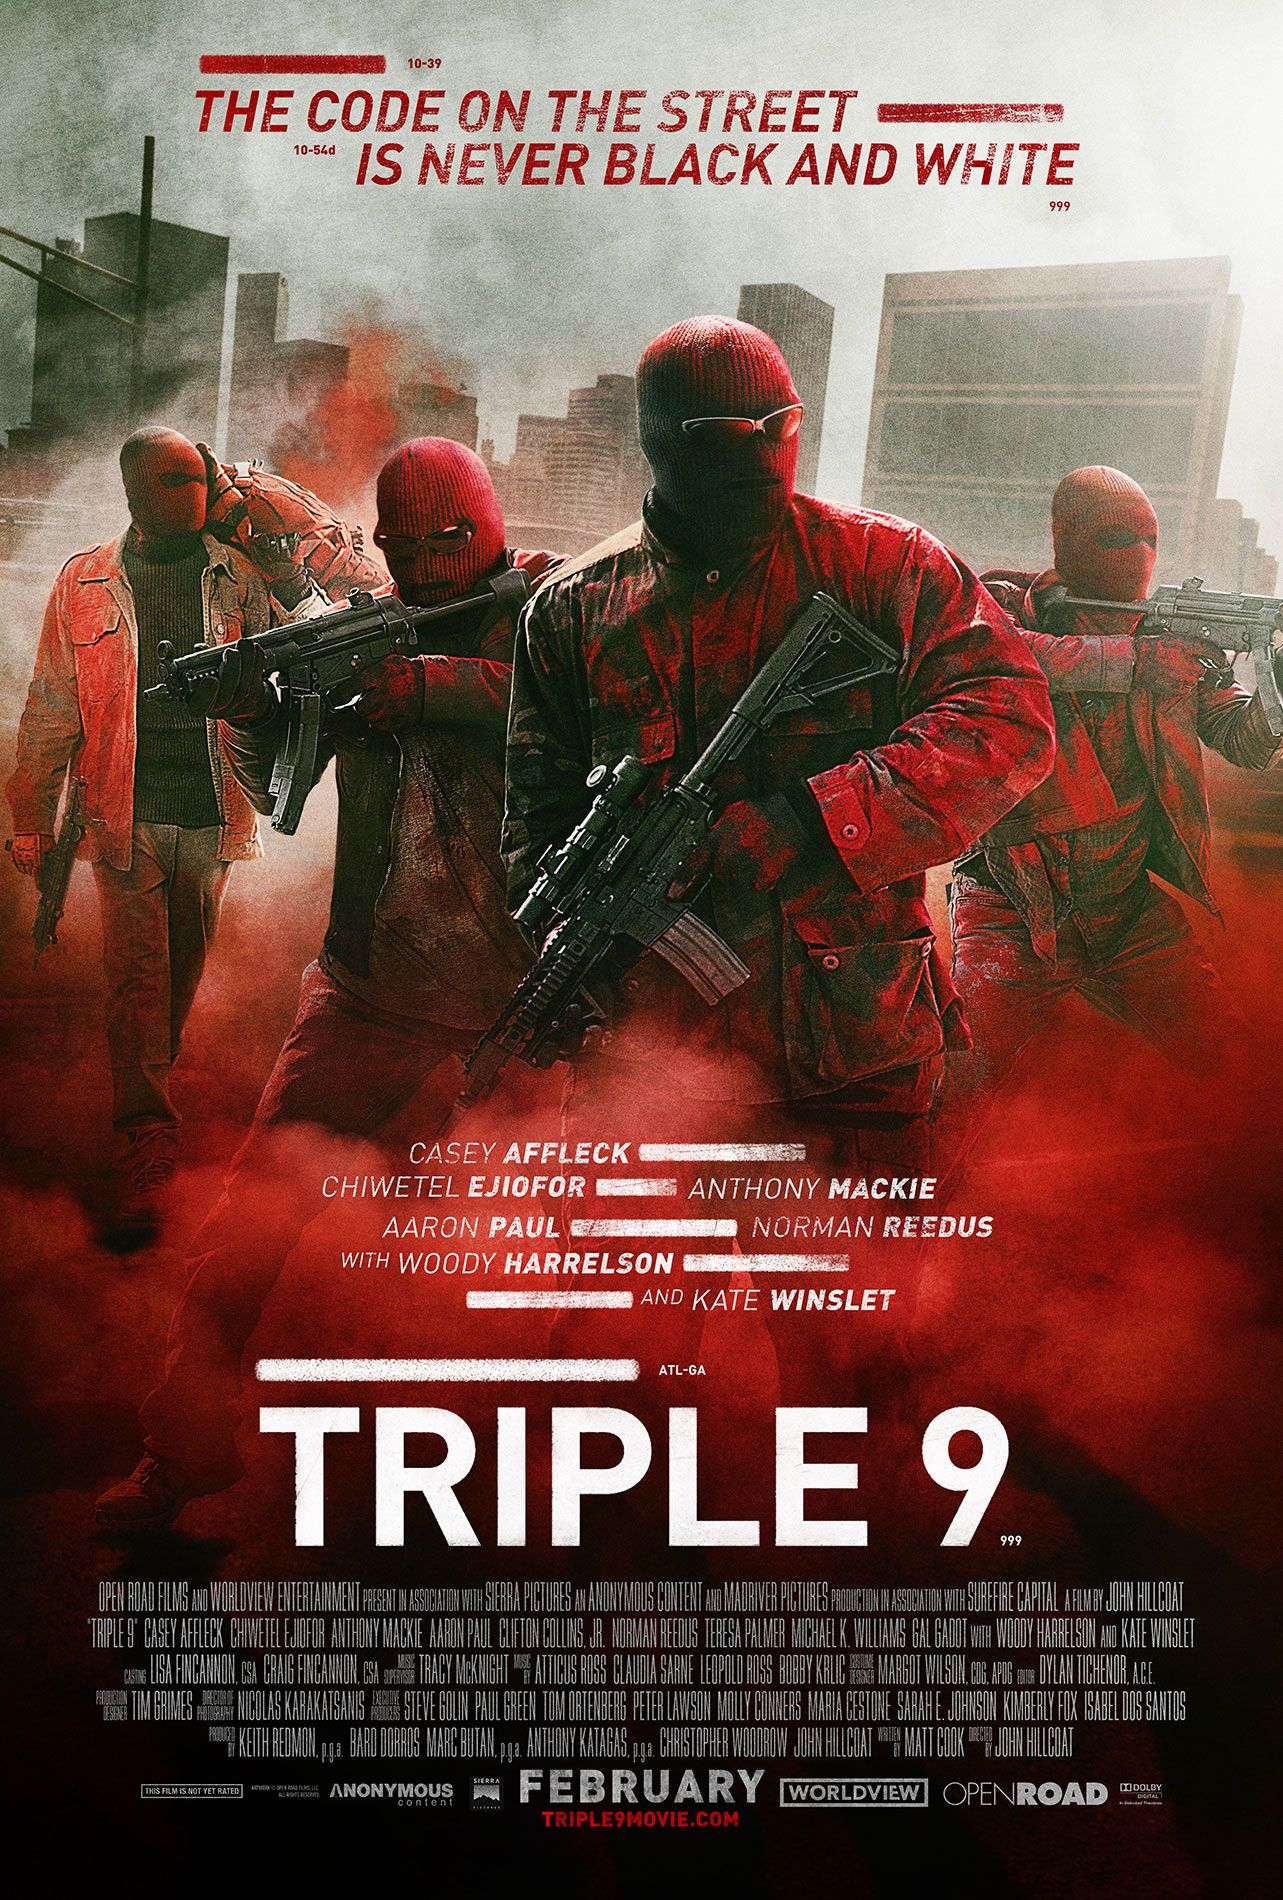 Triple9 New trailer and movie poster for action thriller